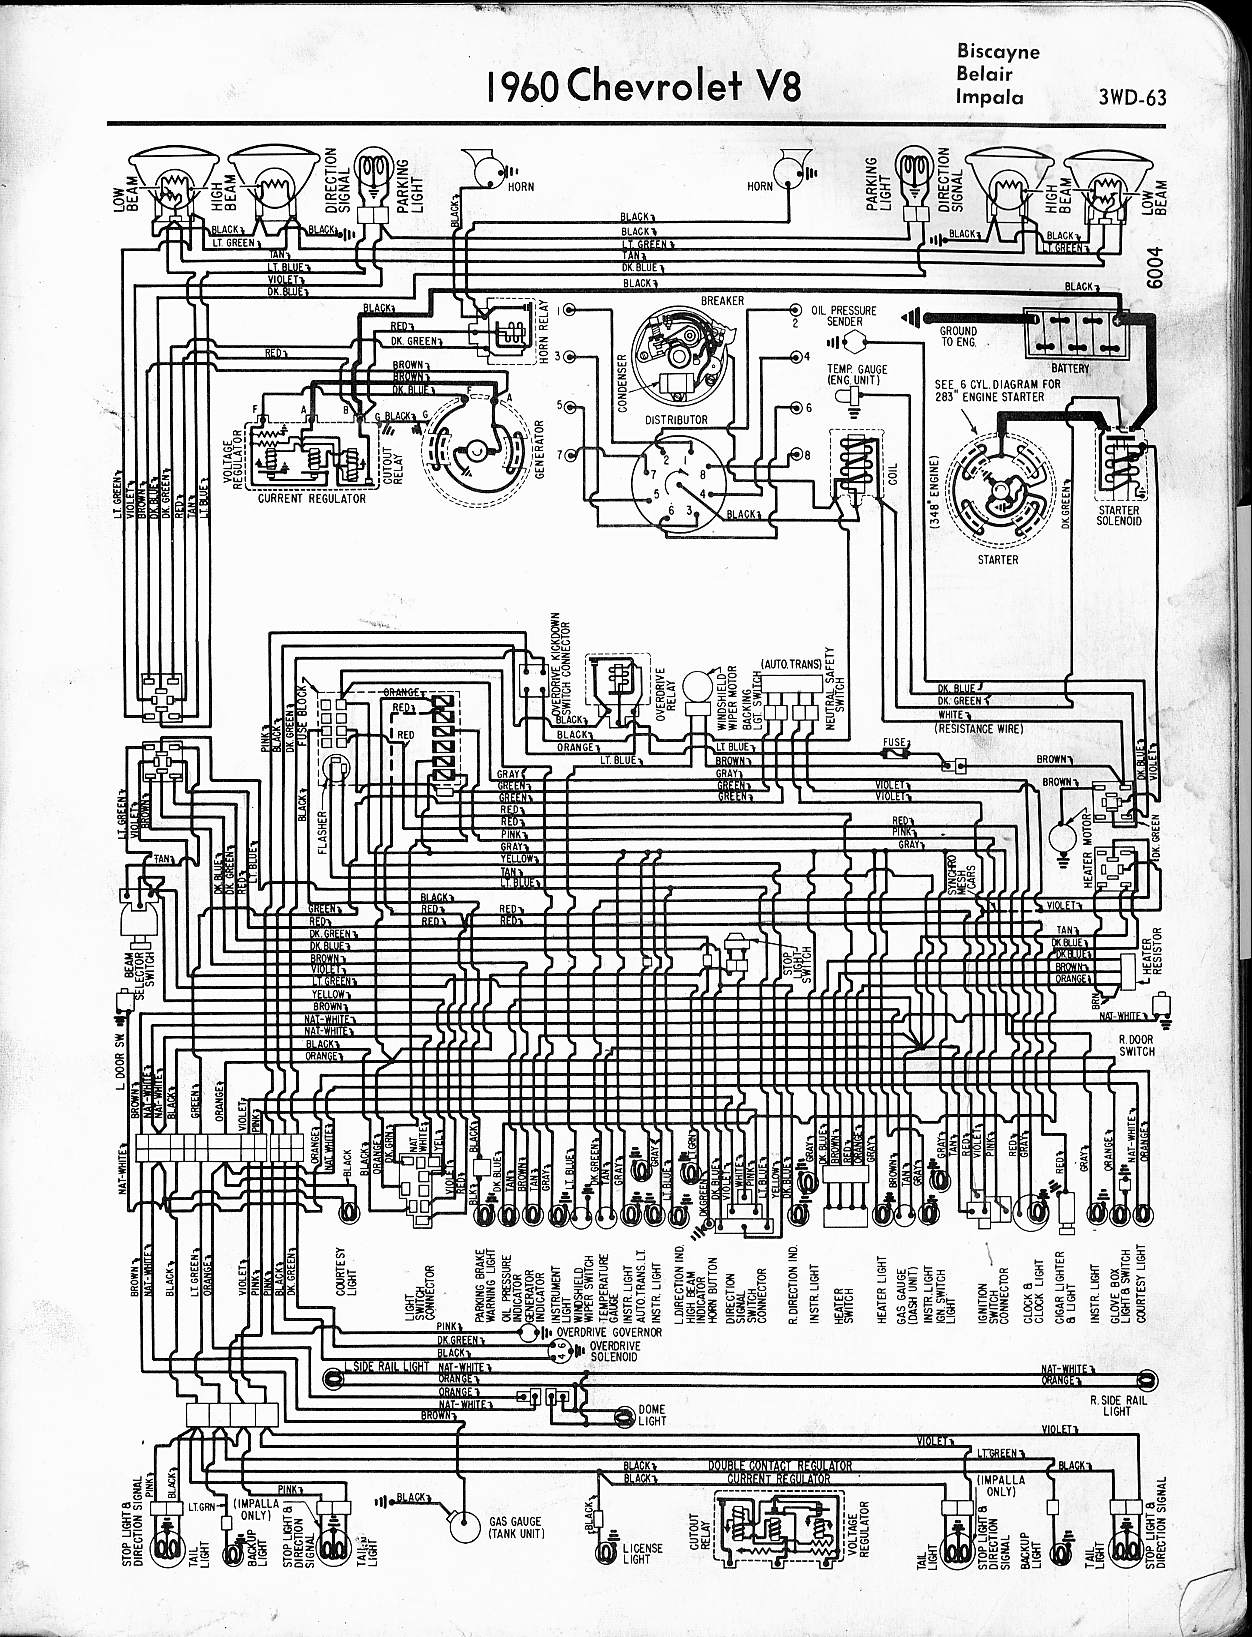 MWireChev60_3WD 063 57 65 chevy wiring diagrams 1984 El Camino Wiring-Diagram at readyjetset.co